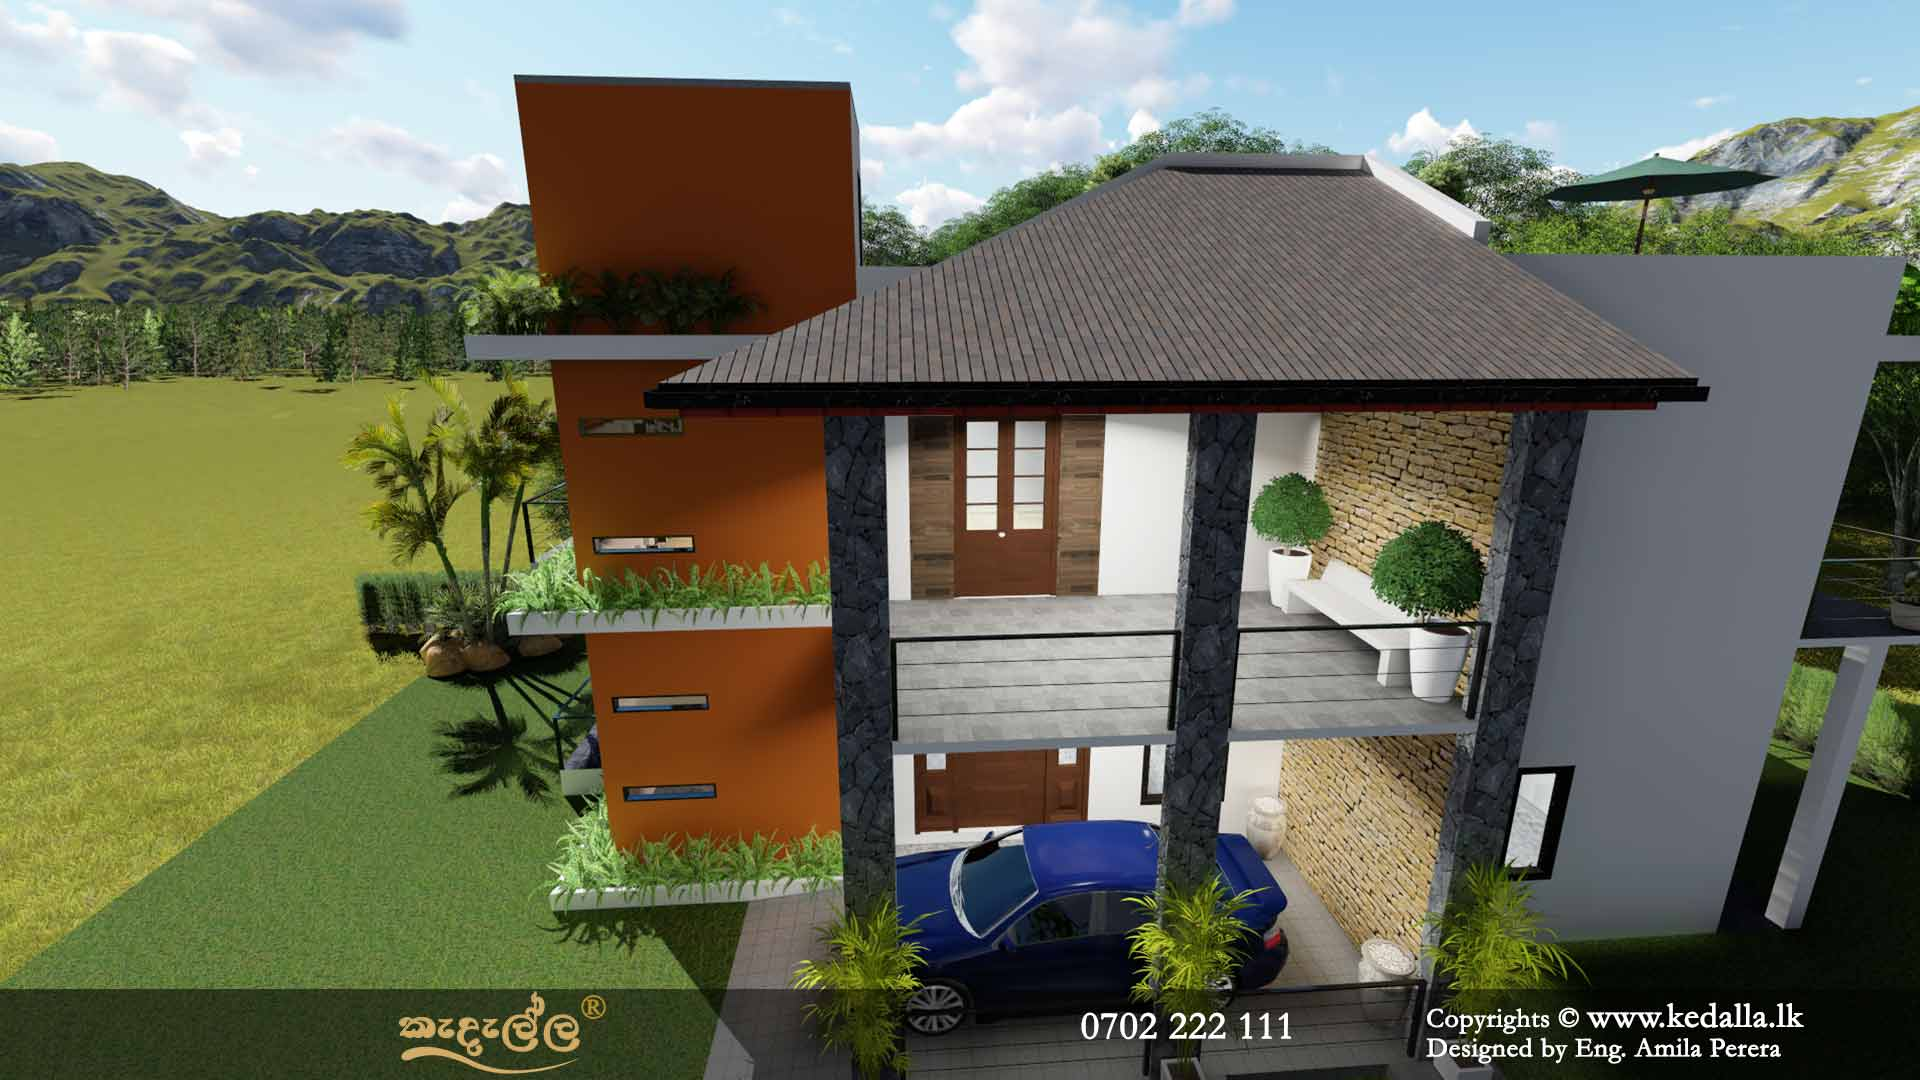 4 Bedroom Two Story House Plans in Sri Lanka - Designed by archtects in Kandy